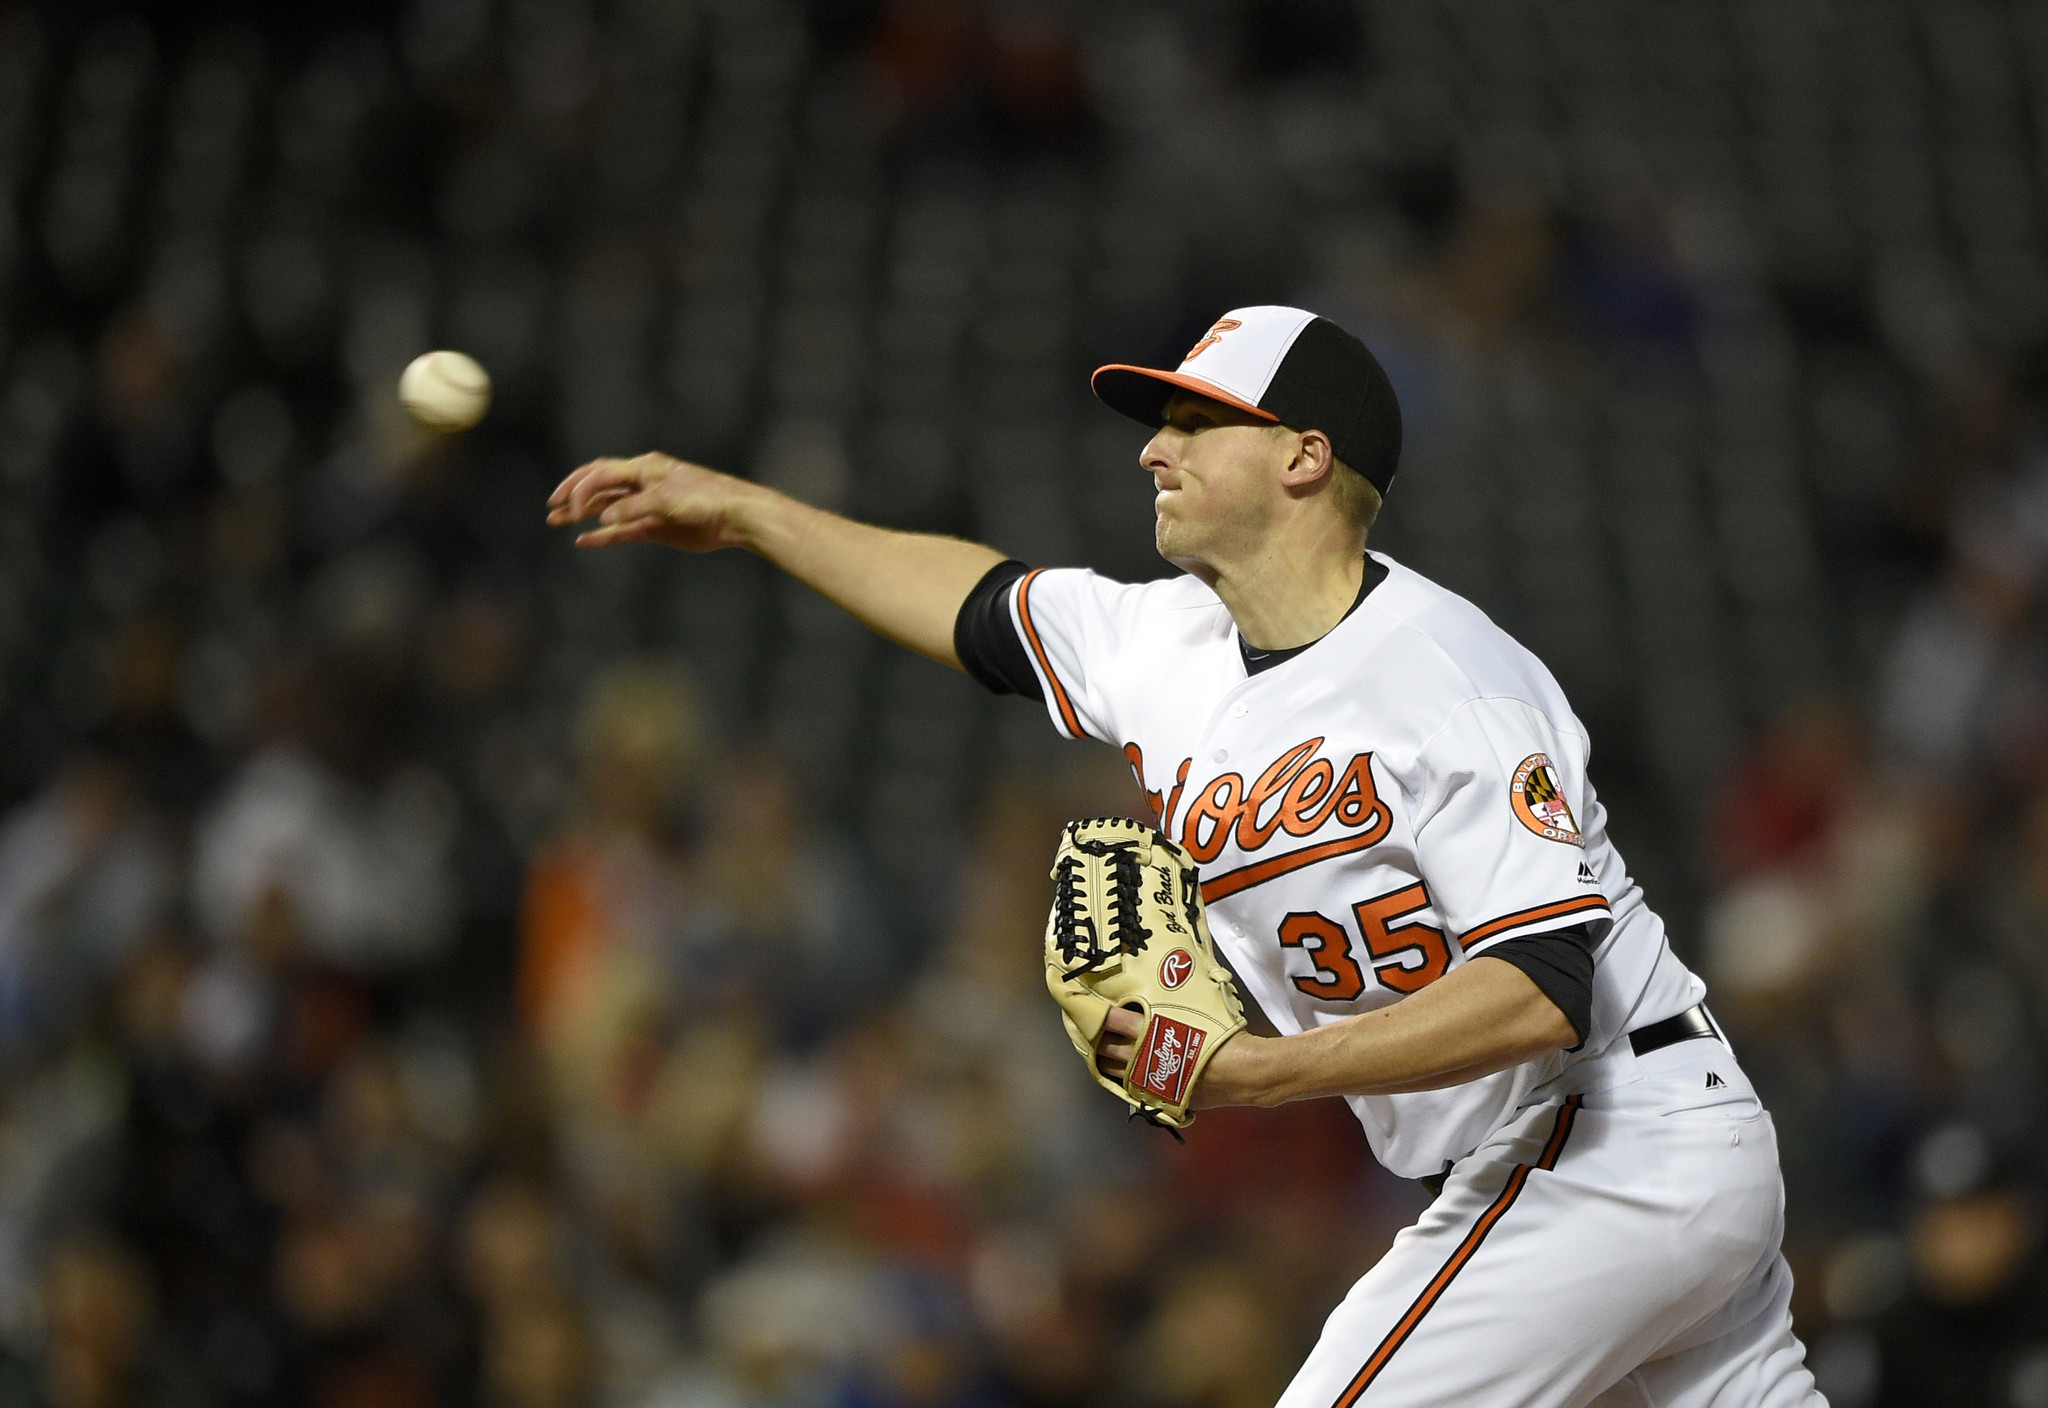 Bs-sp-orioles-all-star-advance-0712-20160711